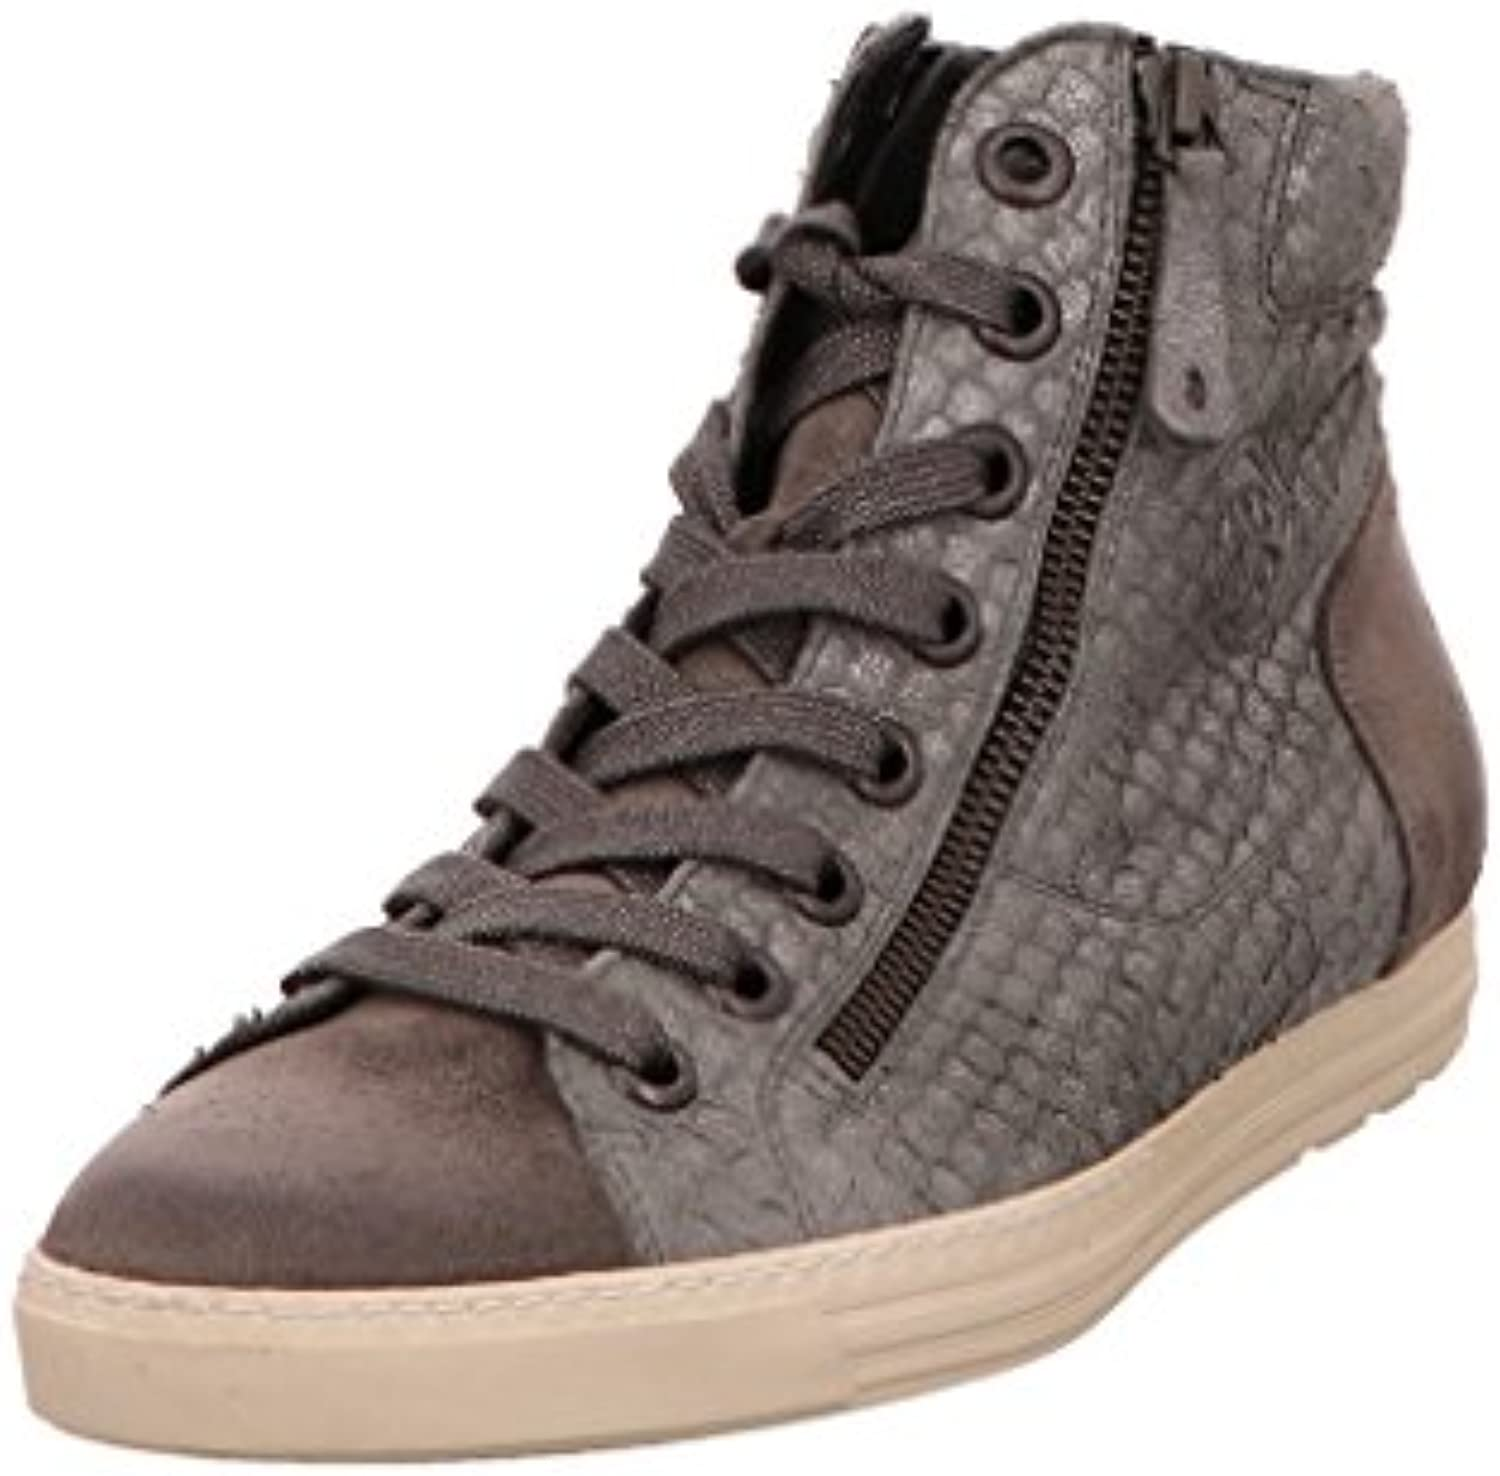 58f6ce5b84f6 Paul Green Women s 1230-218 Trainers Trainers Trainers Parent B01N7VQCH4  8798a8